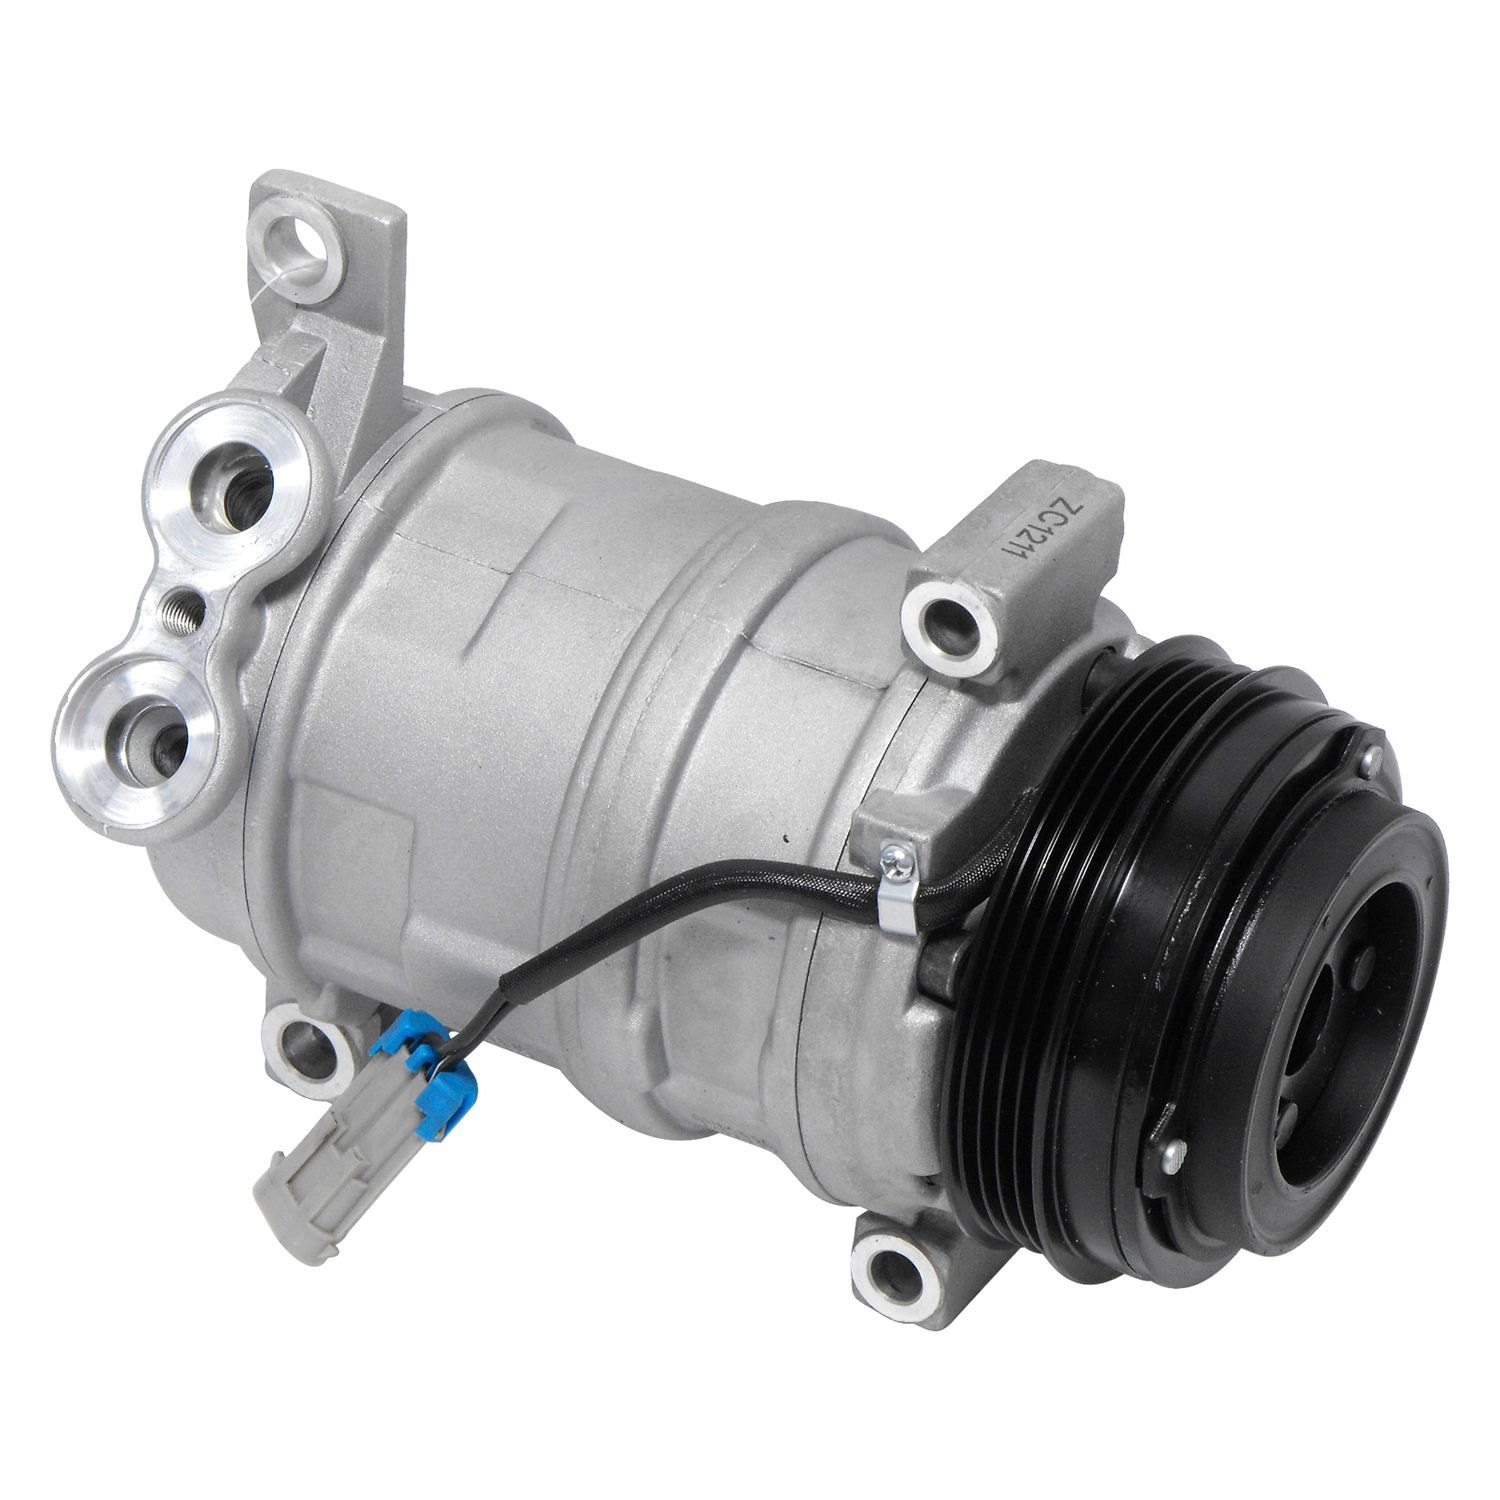 Air Conditioning Parts : Uac chevy avalanche  a c compressor